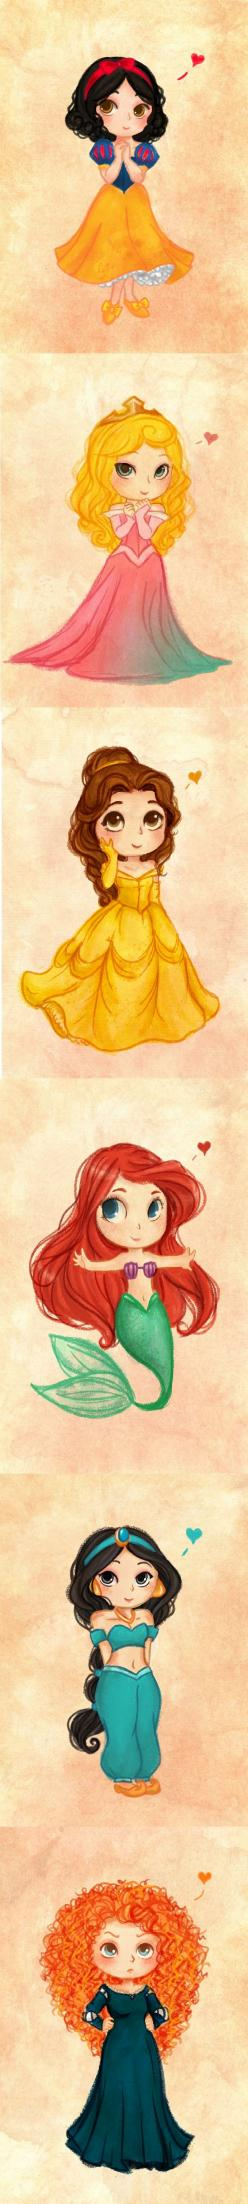 Les princesses   la quelle préférer vous ?: Disney Drawing, Chibi Princess, Disney Cartoon Drawing, Chibi Disney Princess, Disney Princesses Drawing, Disney Princess Cartoon, Disney Princess Drawing, Cartoon Disney Princess